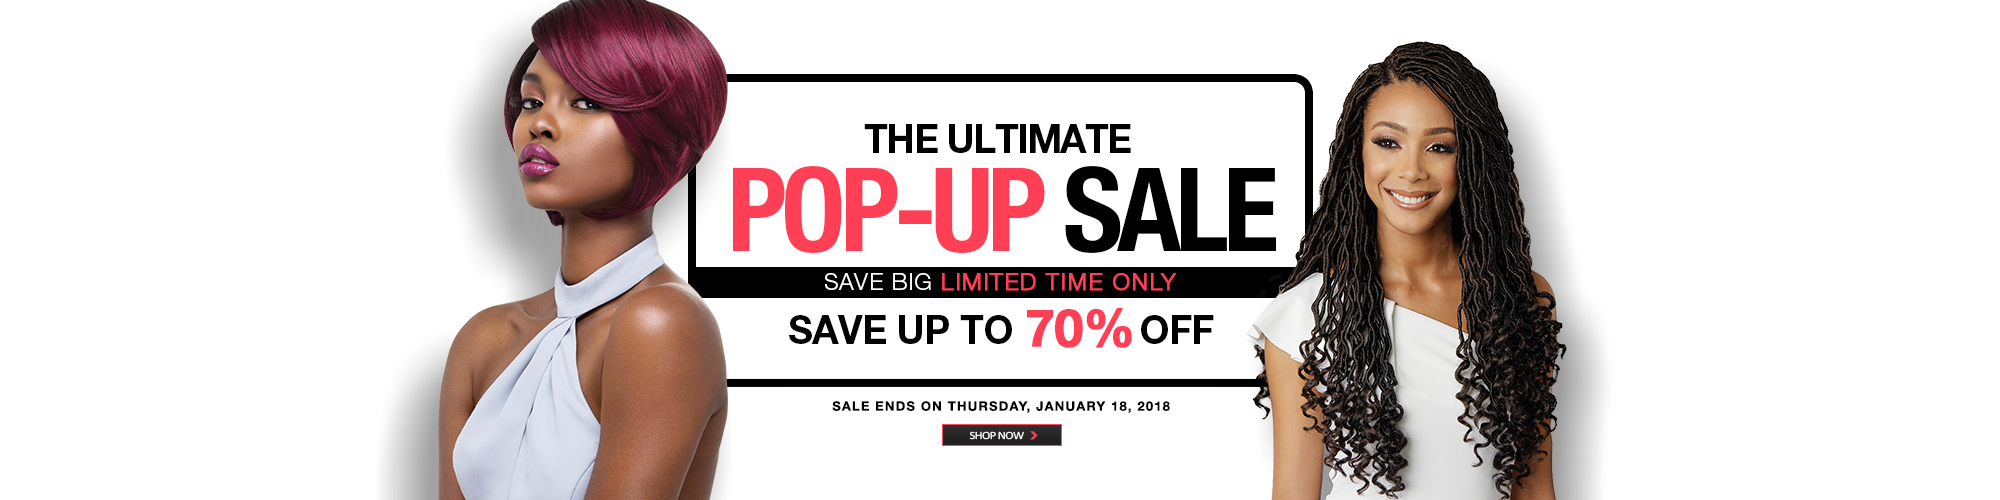 THE ULTIMATE POP-UP SALE!